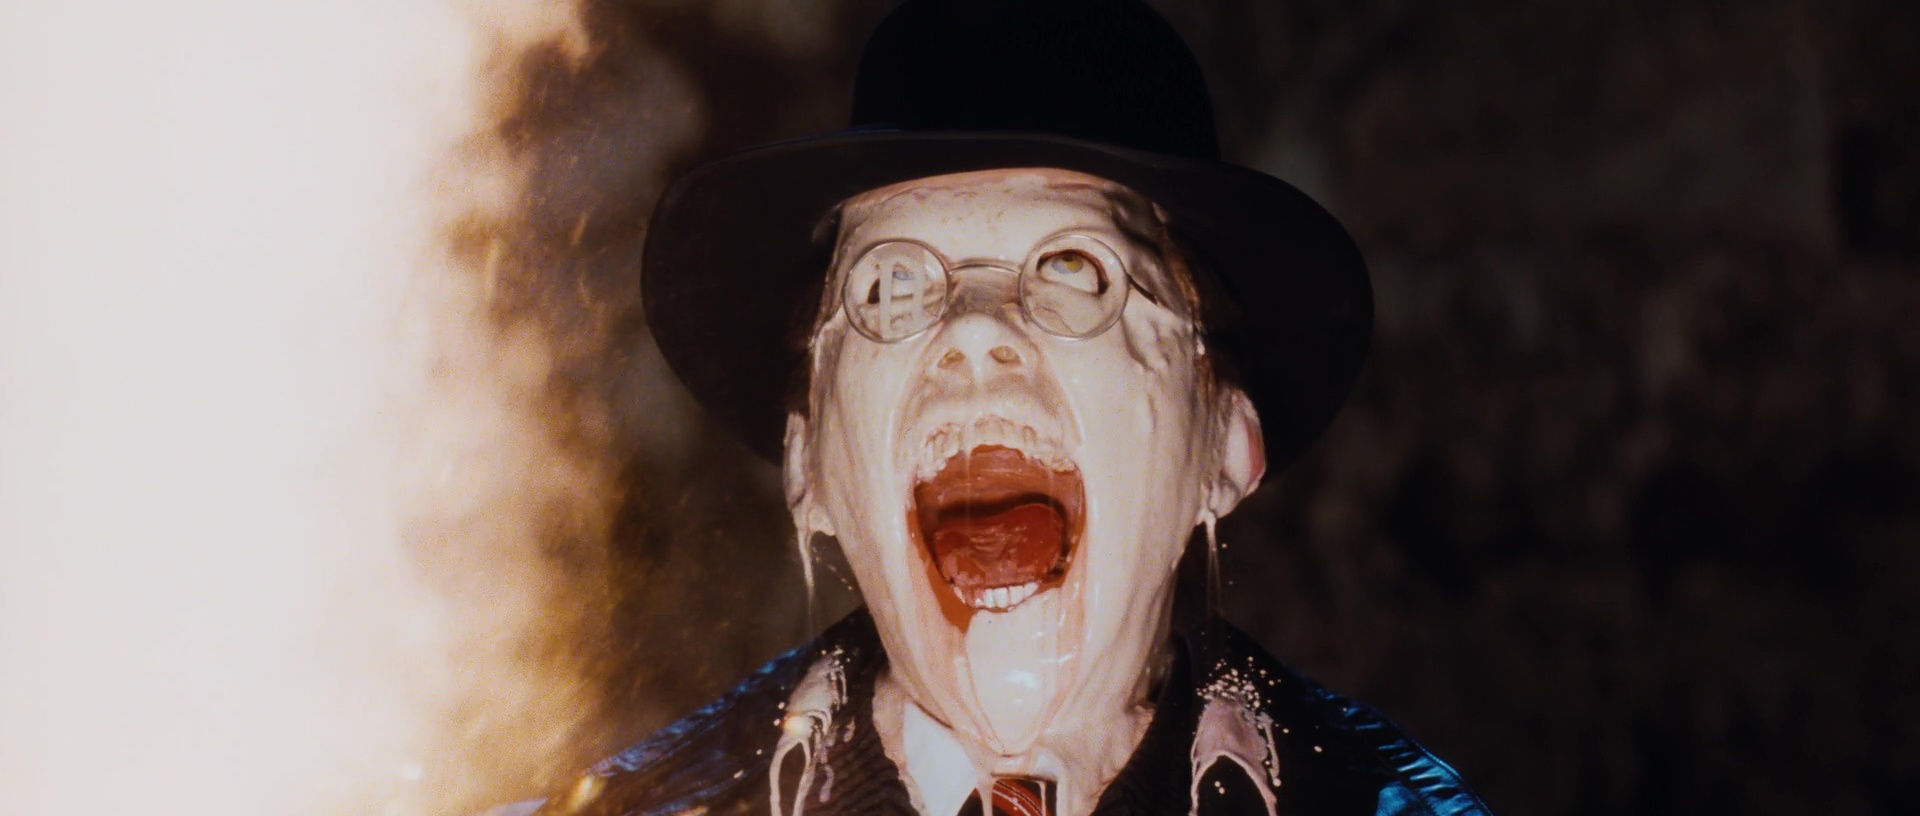 http://images.wikia.com/indianajones/images/e/e2/Death_by_face_melting.jpg